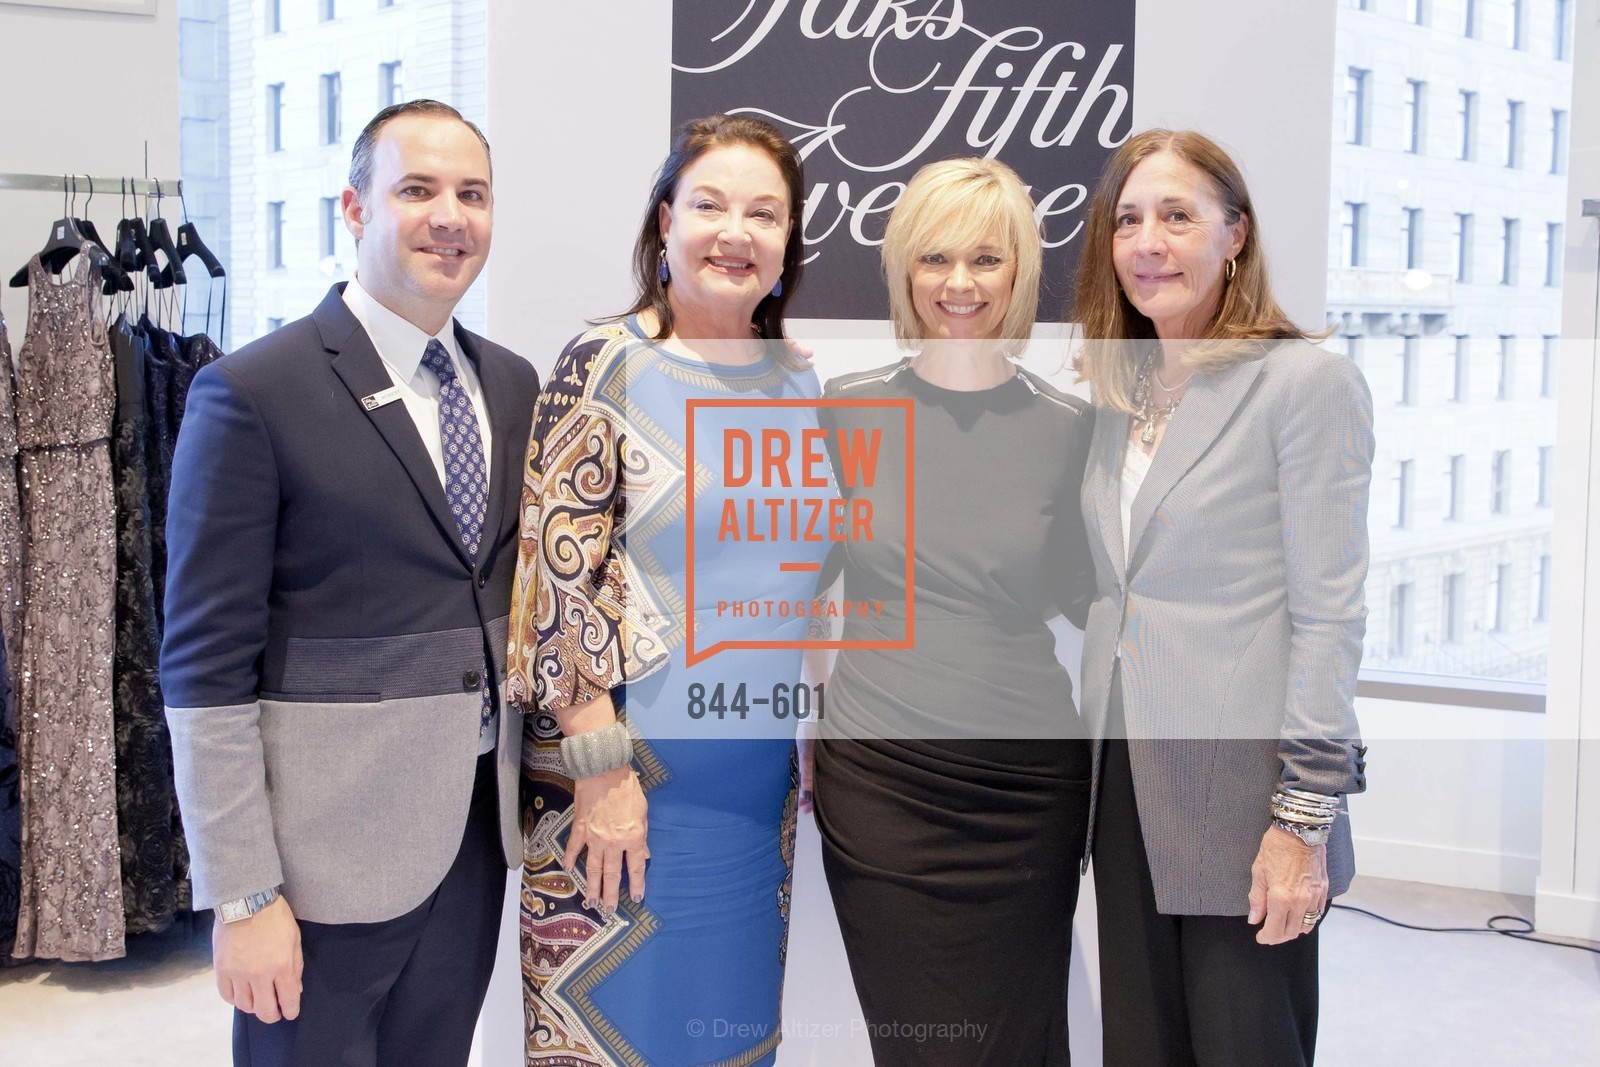 Robert Arnold-Kraft, Elizabeth Merrill, Avril Graham, SAKS FIFTH AVENUE and HARPER'S BAZAAR Host the San Francisco Yacht Club, US, October 8th, 2014,Drew Altizer, Drew Altizer Photography, full-service agency, private events, San Francisco photographer, photographer california